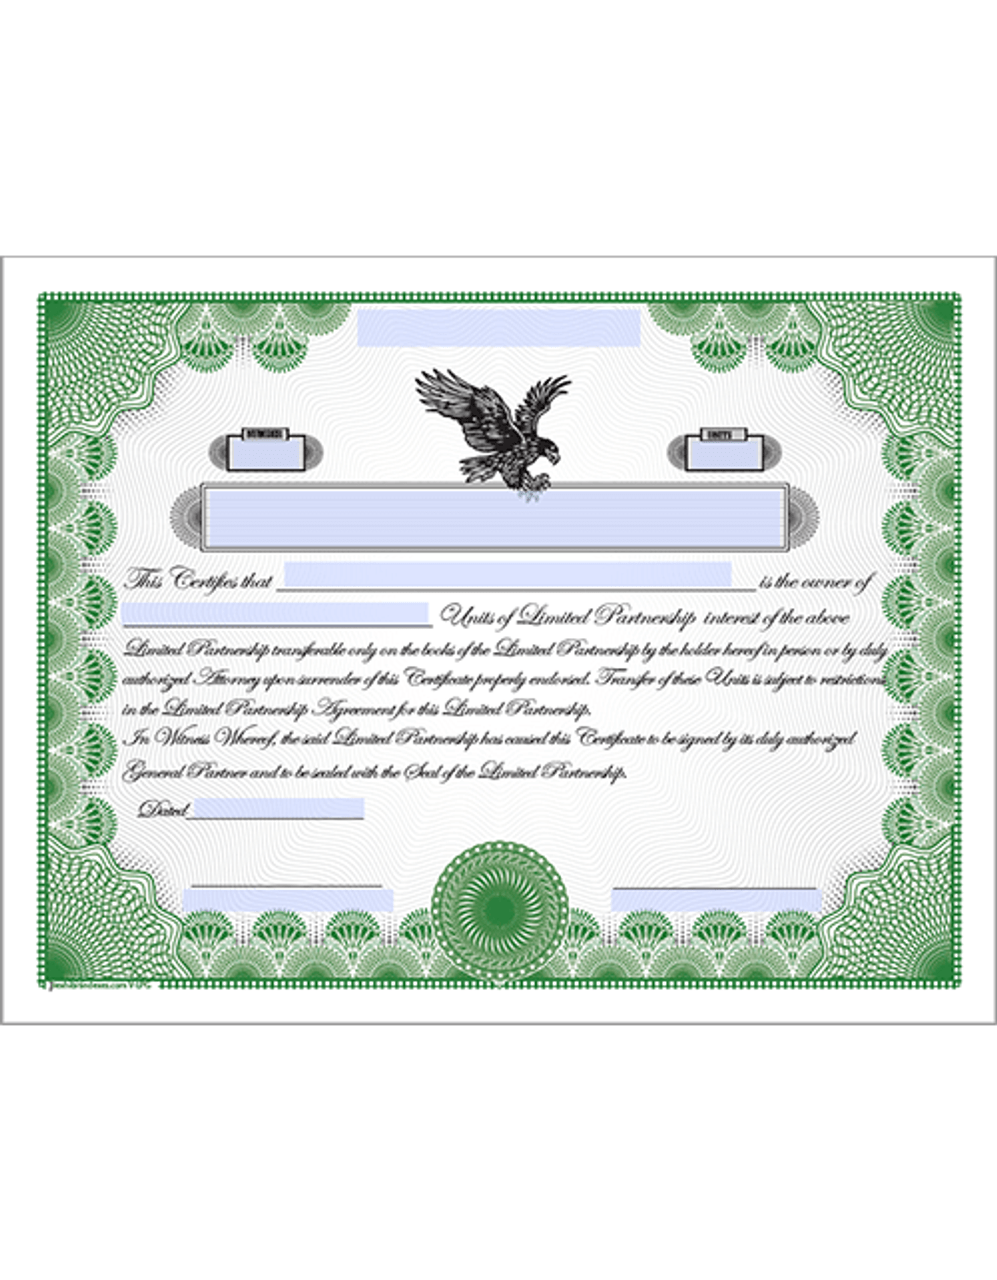 It is a picture of Printable Stock Certificate regarding cooperative